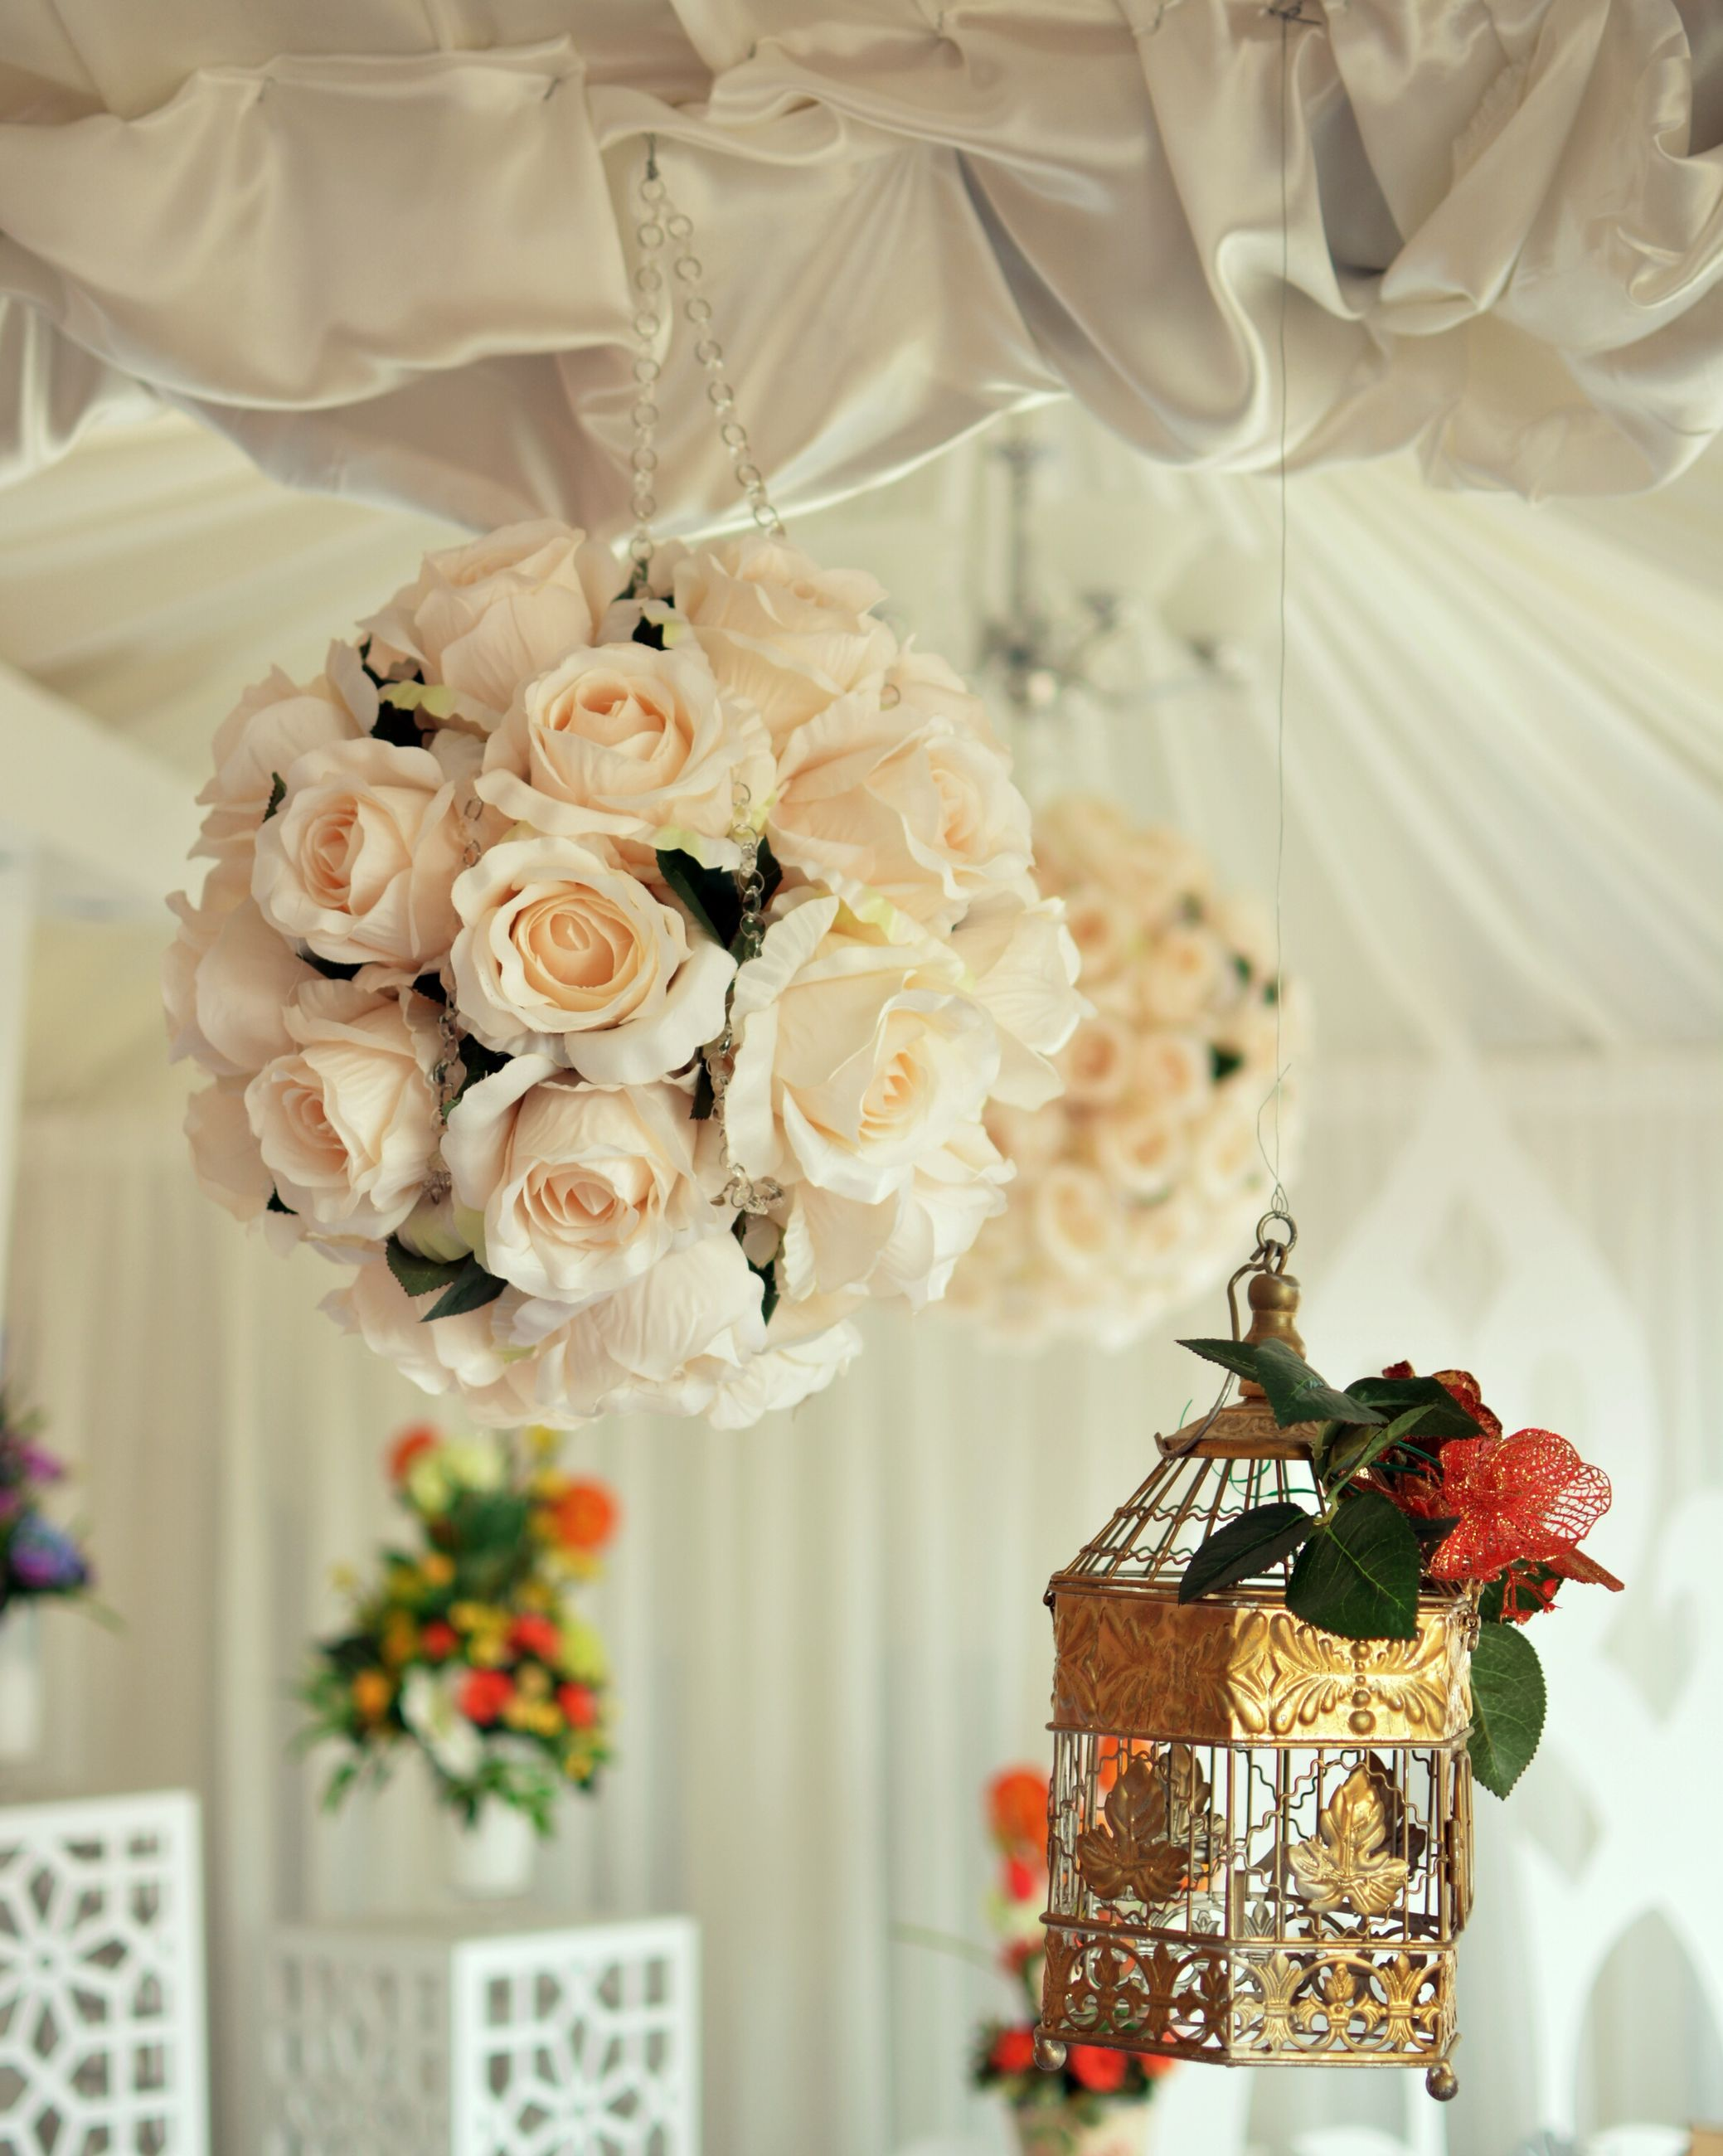 indoors, flower, decoration, close-up, focus on foreground, vase, hanging, white color, religion, selective focus, table, glass - material, fragility, still life, freshness, no people, home interior, art and craft, spirituality, ornate